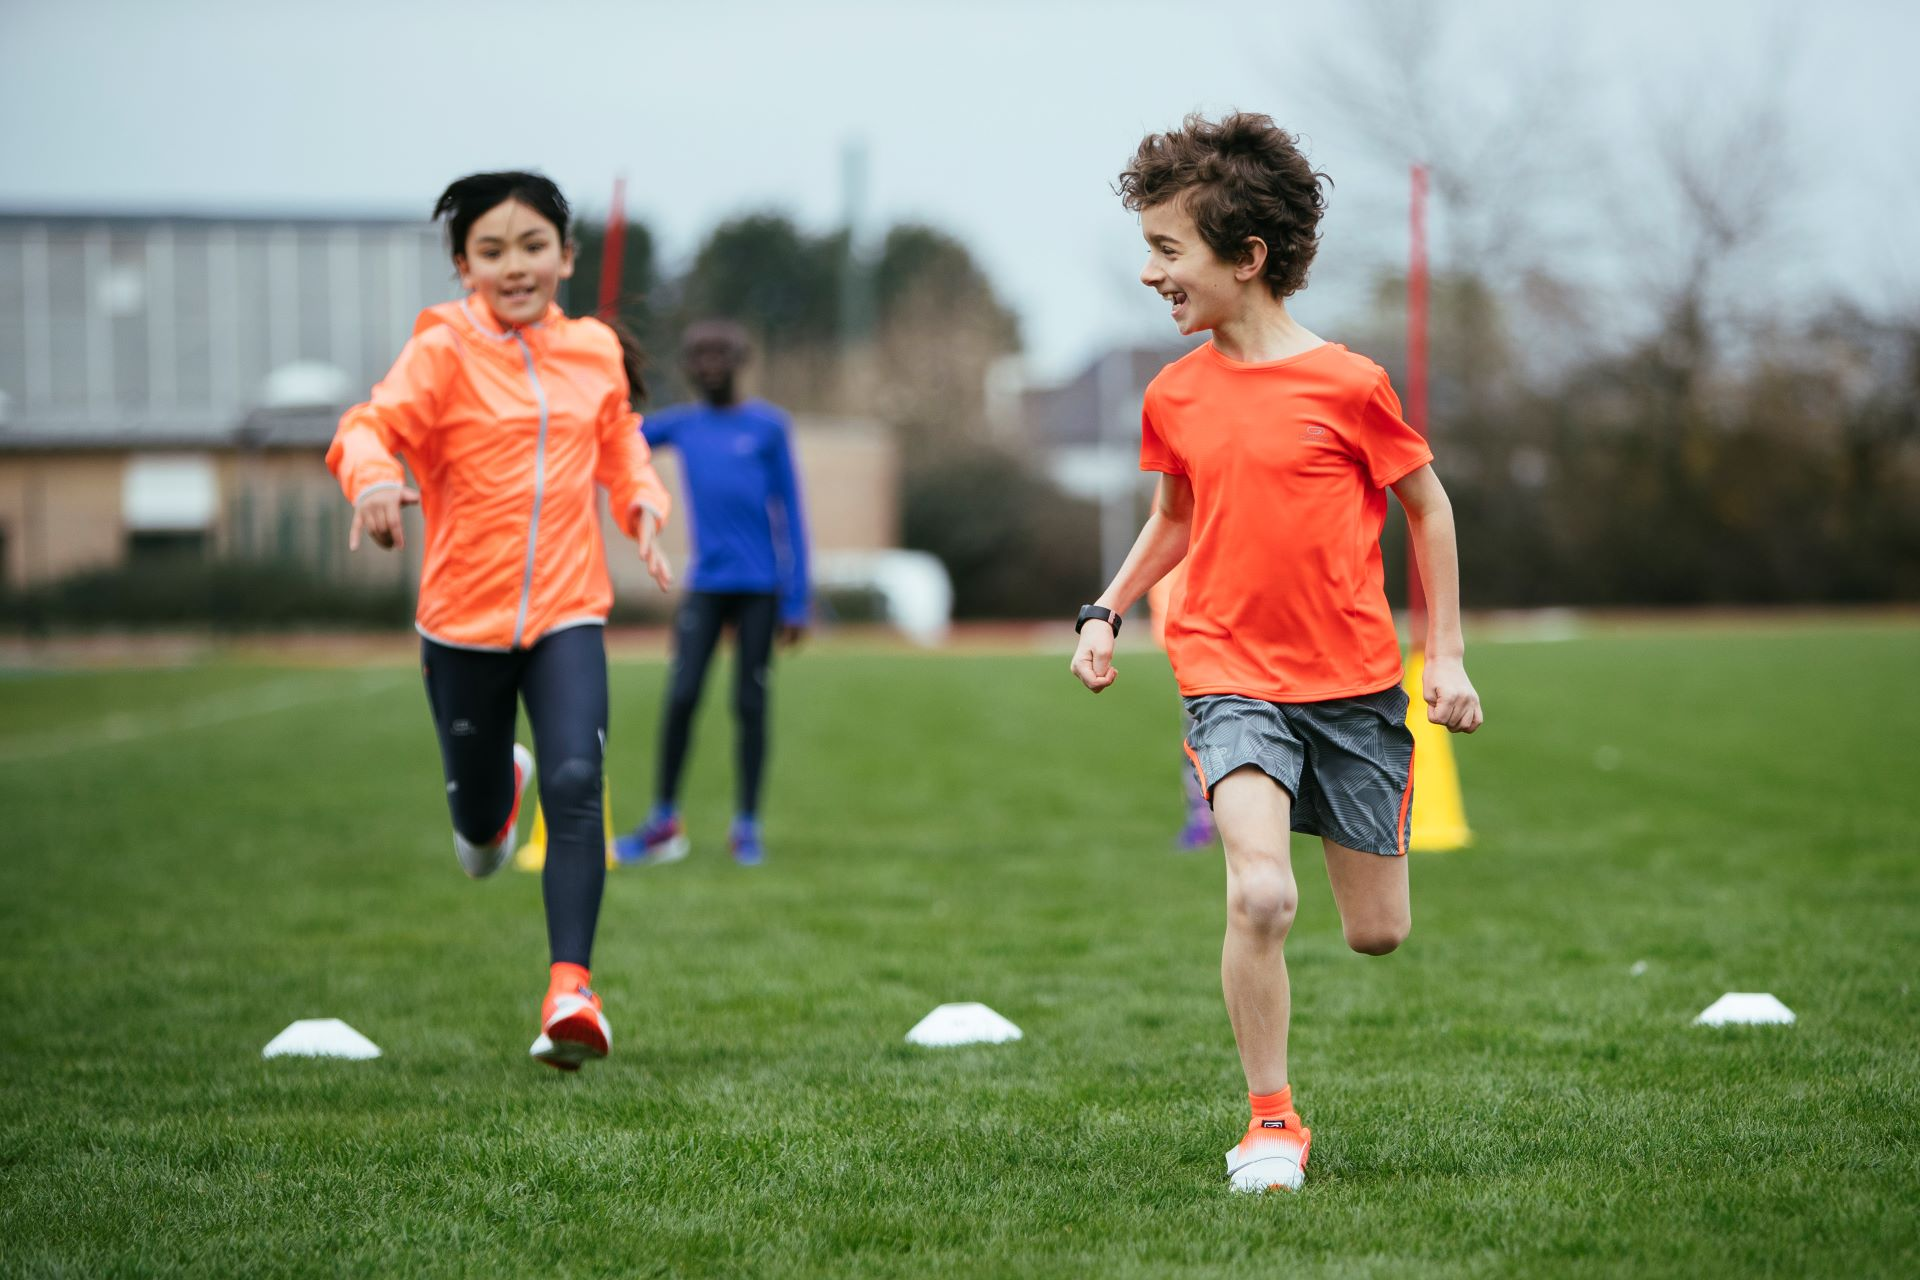 Athletics Easy: Shoes For A Natural Stride